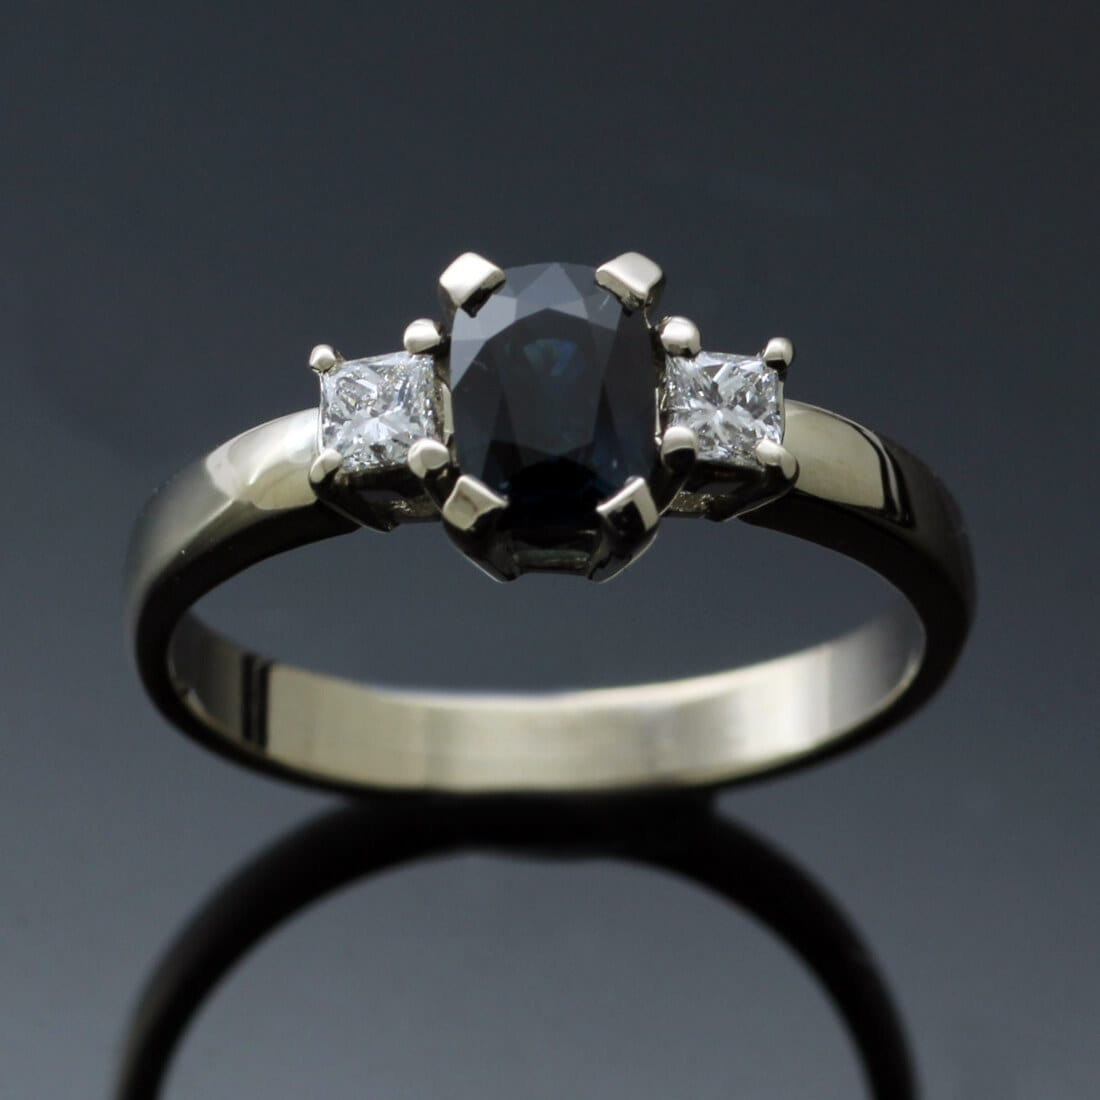 Bespoke handmade modern Sapphire Diamond White Gold Trilogy ring